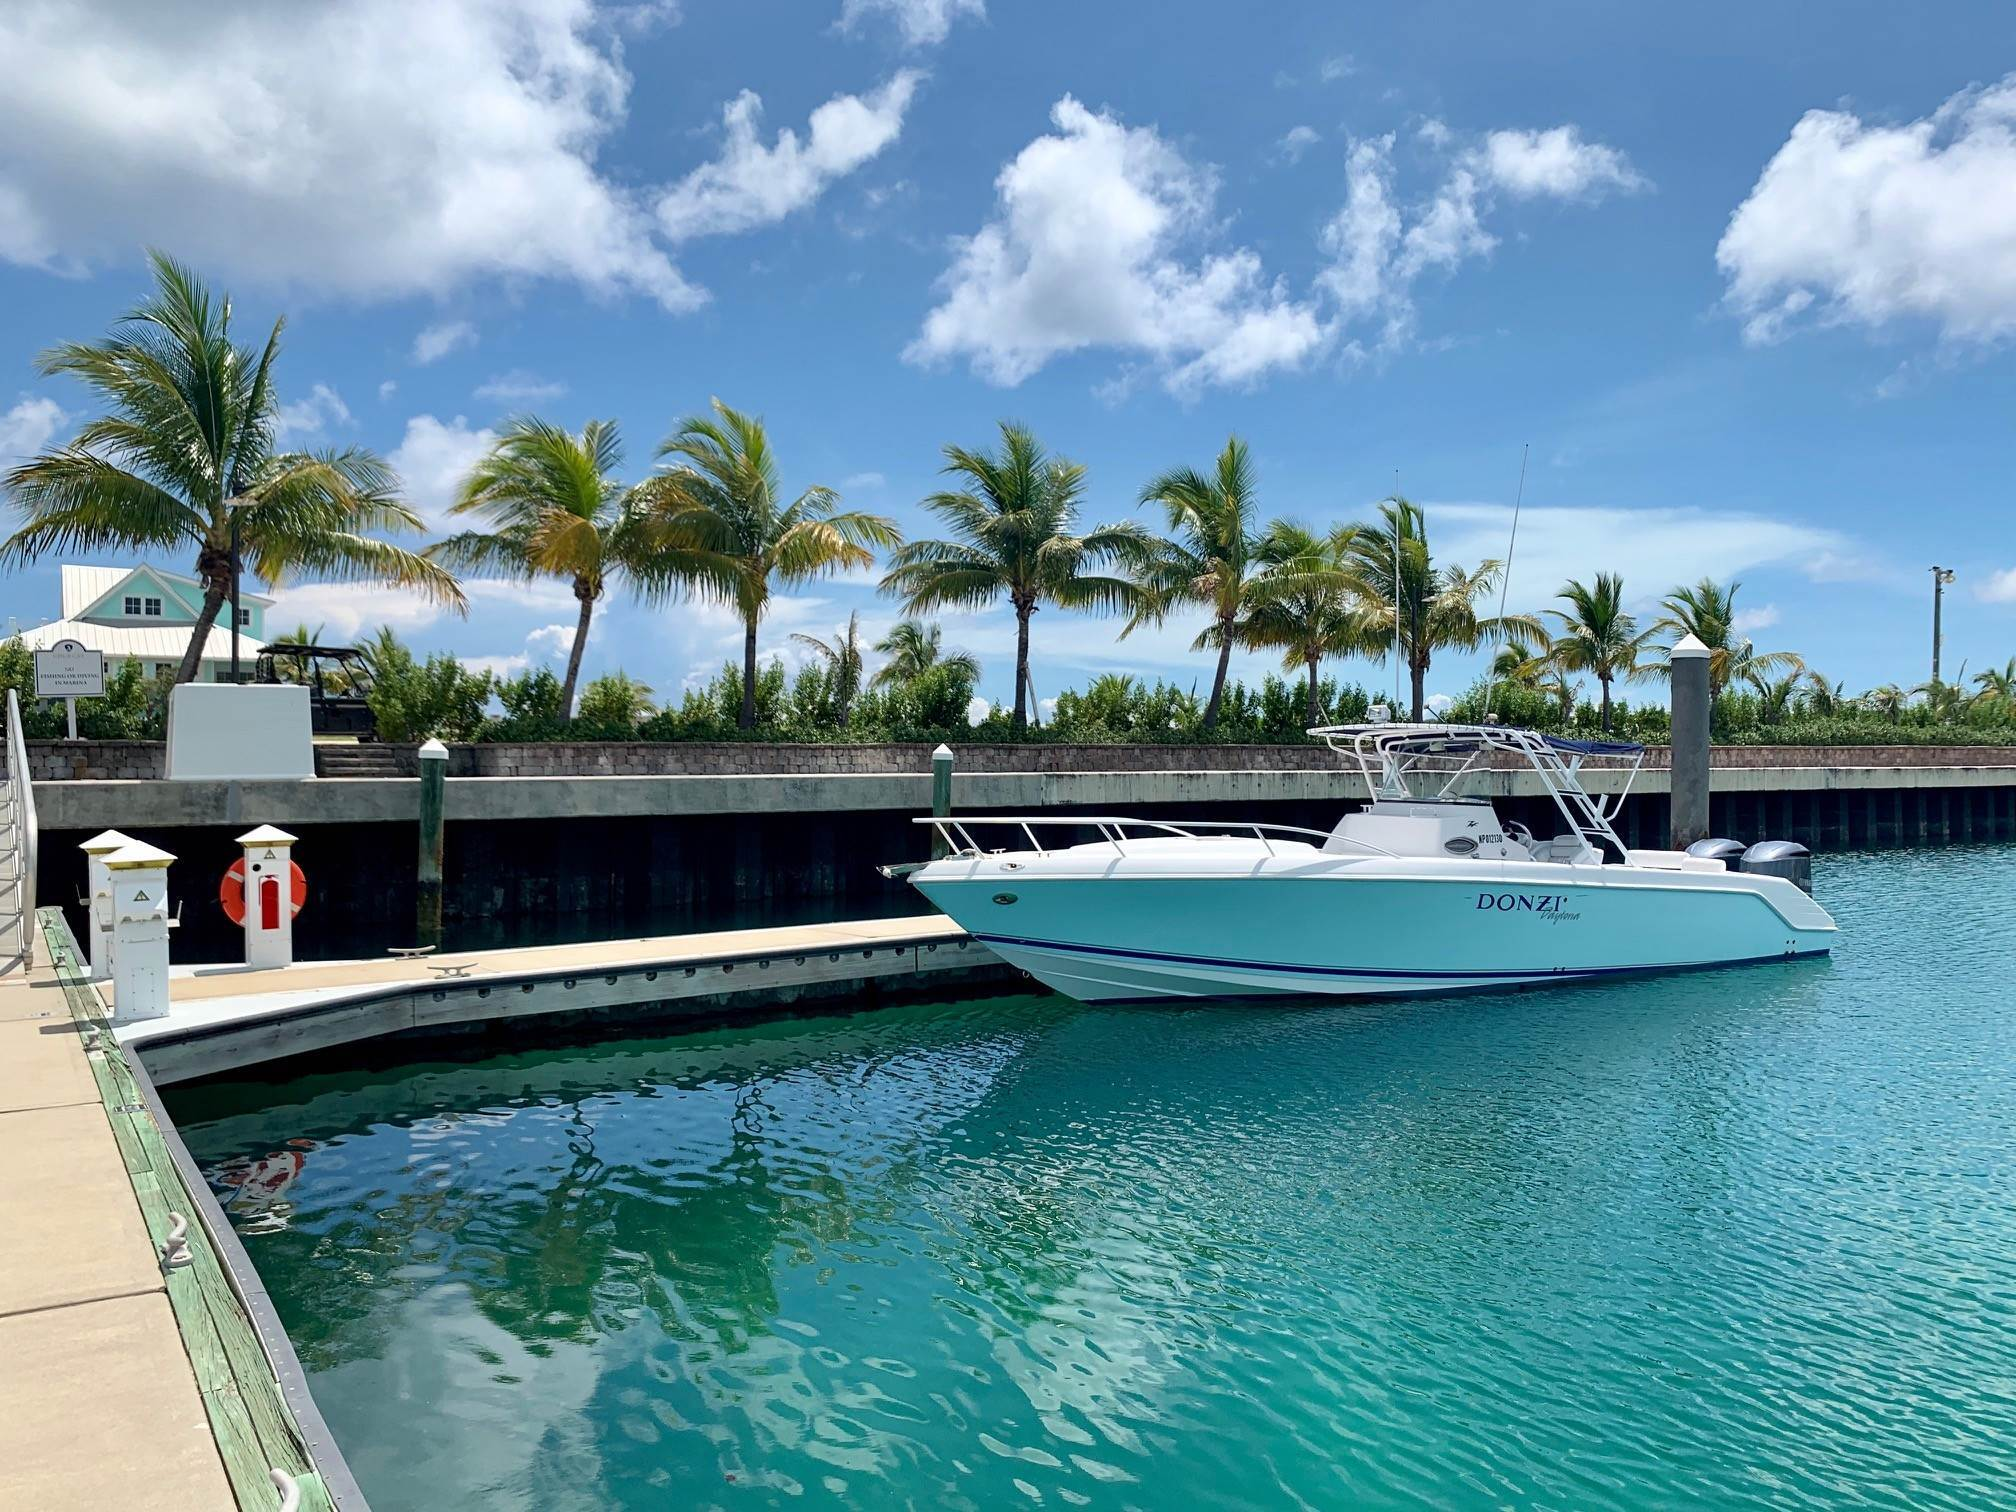 Otro por un Venta en Dock Slip #322 Chub Cay Marina, The Berry Islands - MLS 38791 Chub Cay, Islas Berry, Bahamas